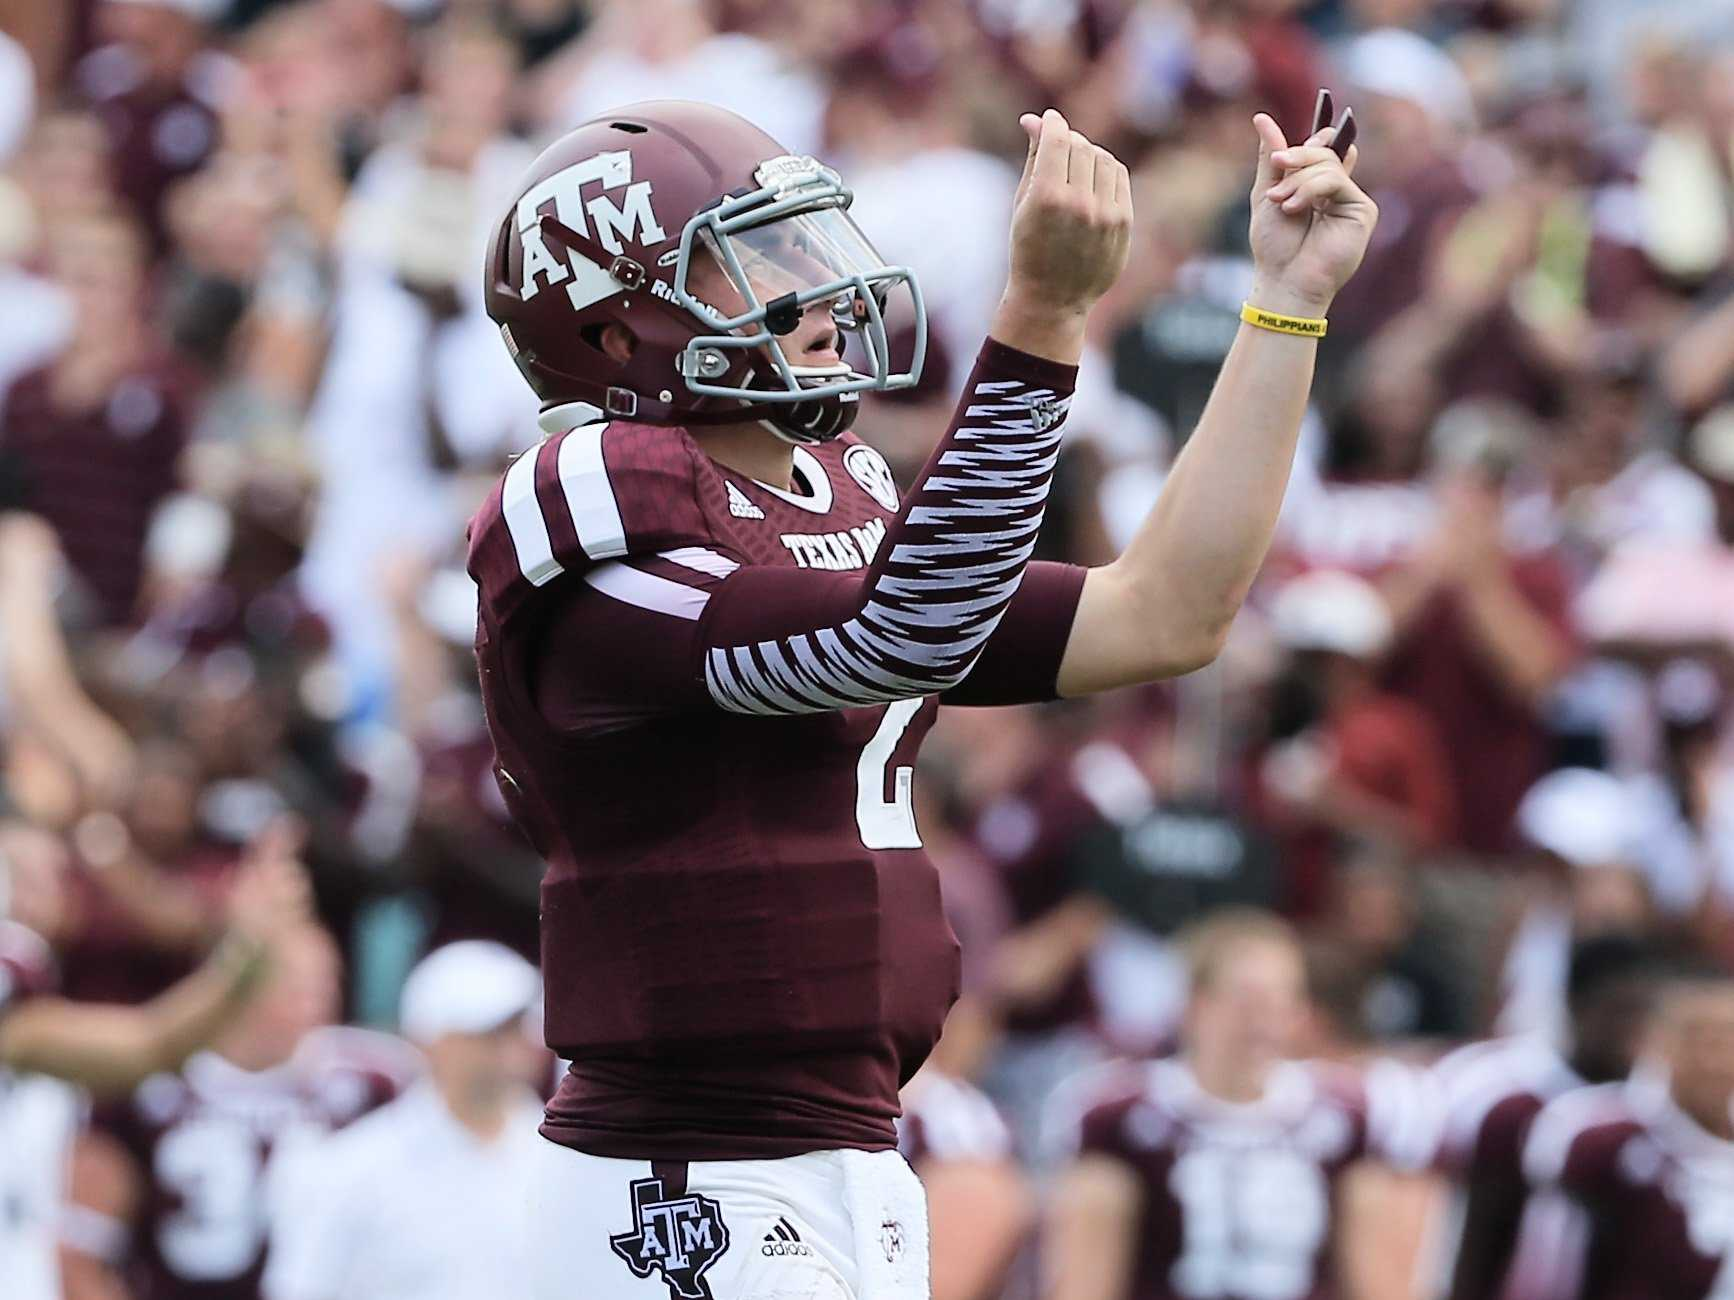 Johnny Football is poised for a boom or bust career. Take caution when drafting him in any format.